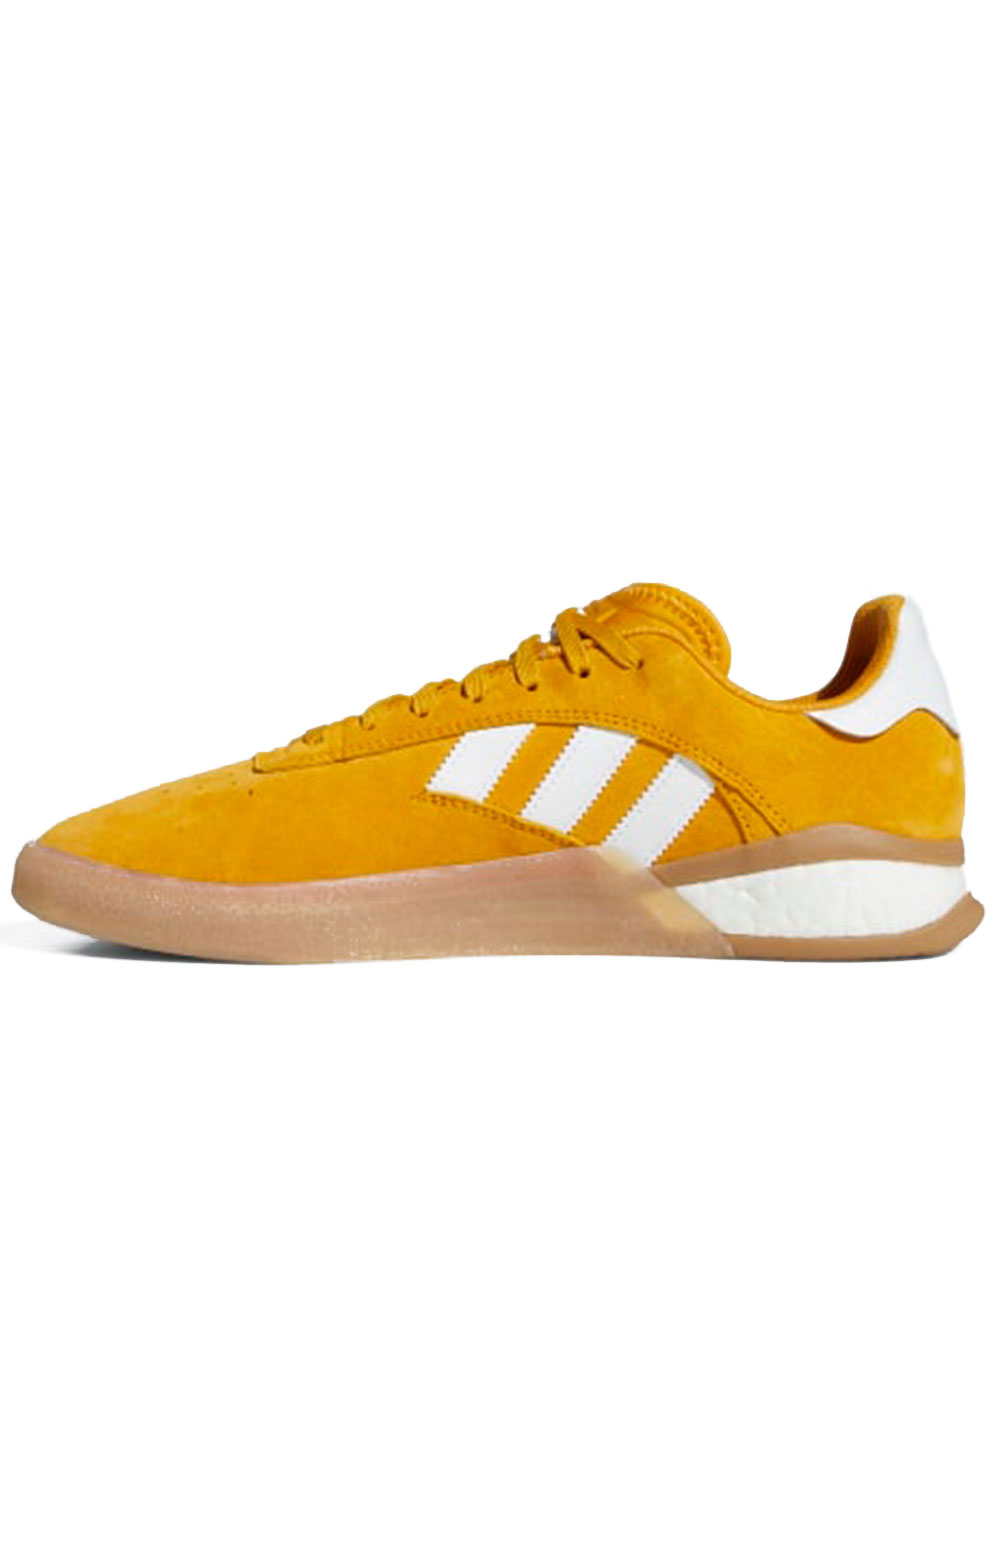 (EE7669) 3ST.004 Shoes - Yellow 3